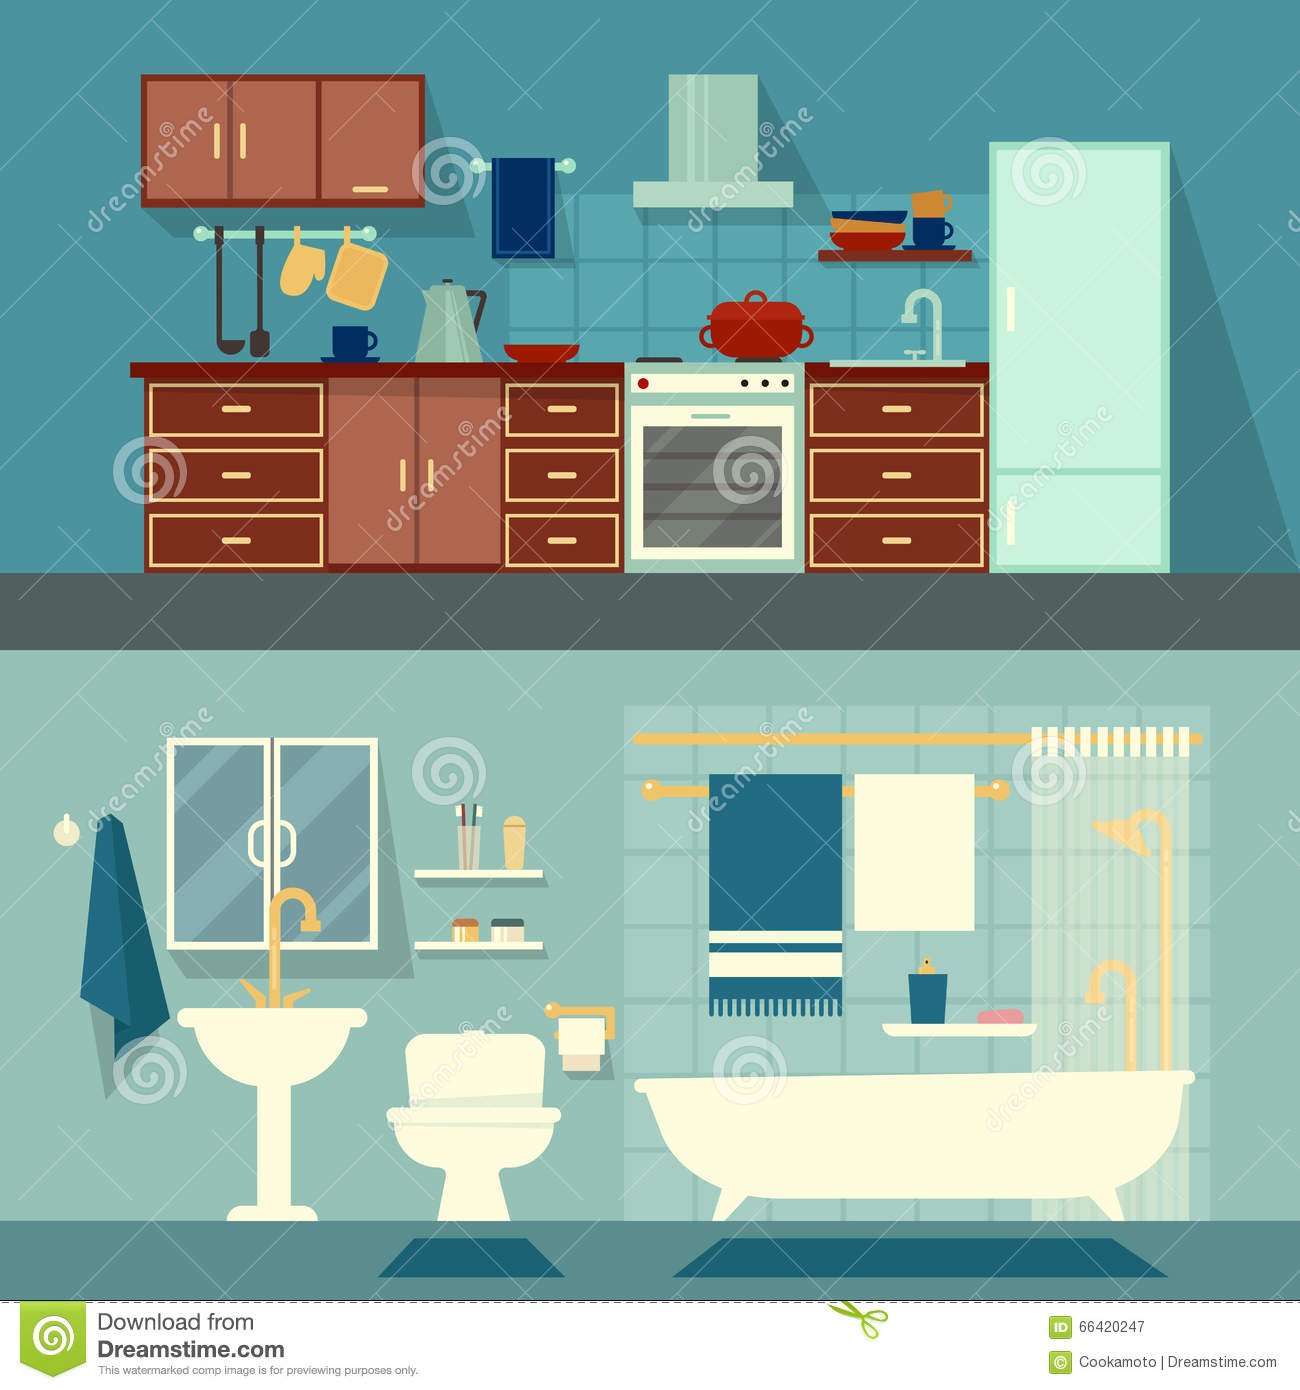 All rooms in the house rooms of homes vector art image illustration - Apartment Bath Cup Decoration Design Extract Flat Fridge Home House Illustration